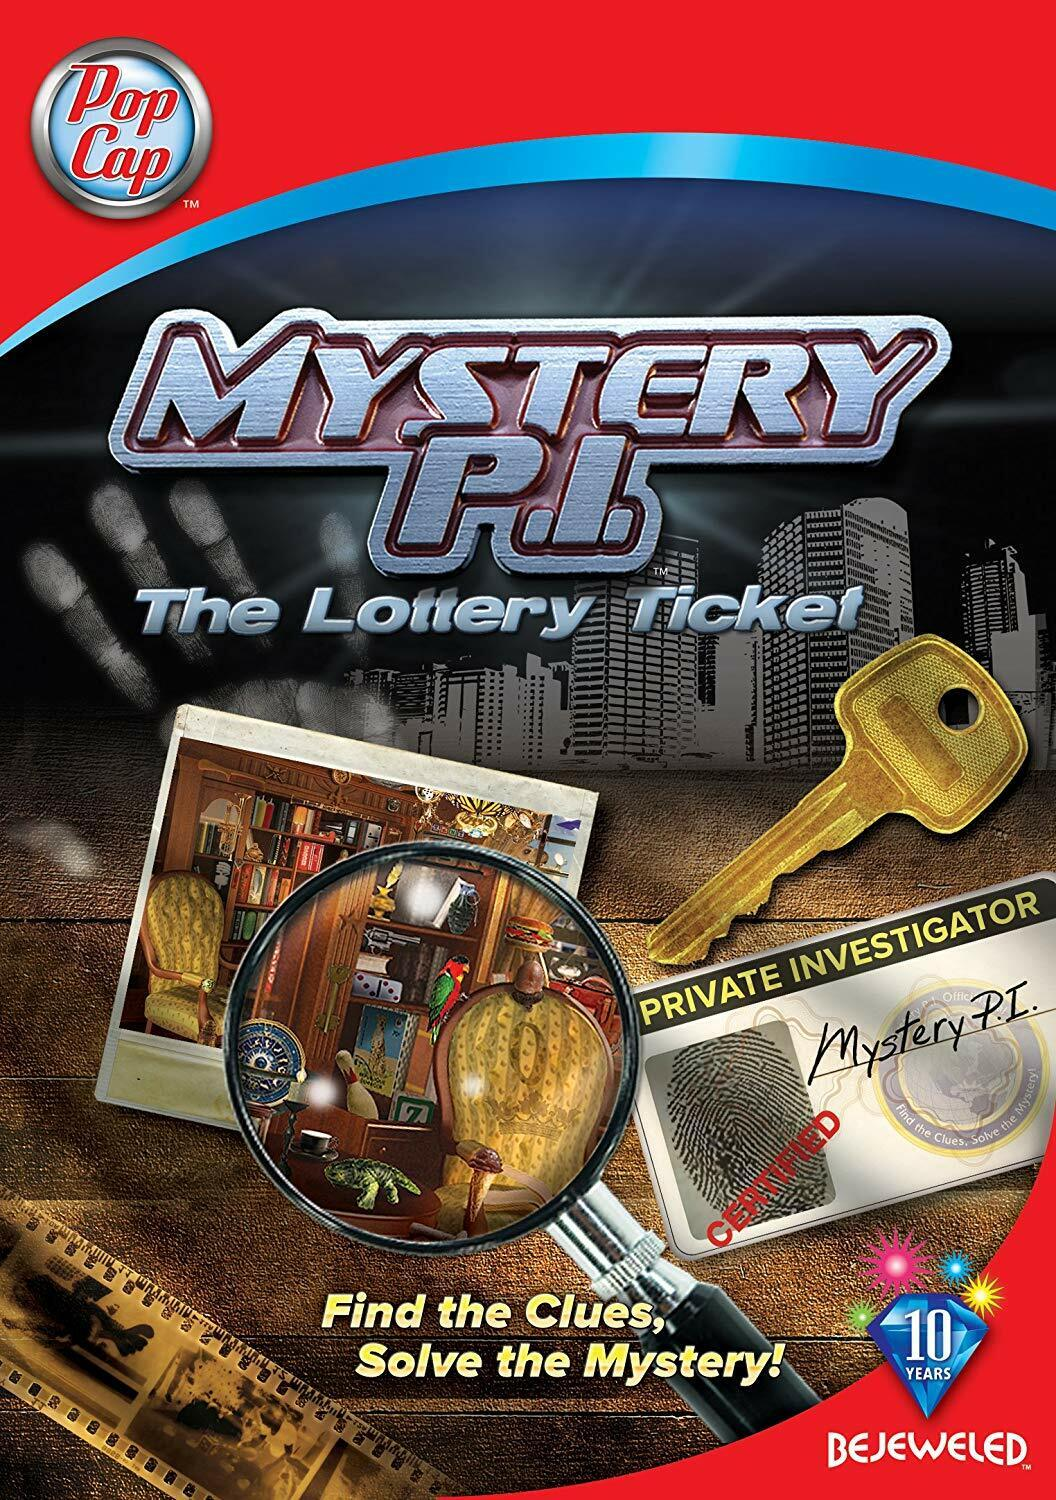 Computer Games - Mystery P.I. The Lottery Ticket PC Games Window 10 8 7 XP Computer seek find